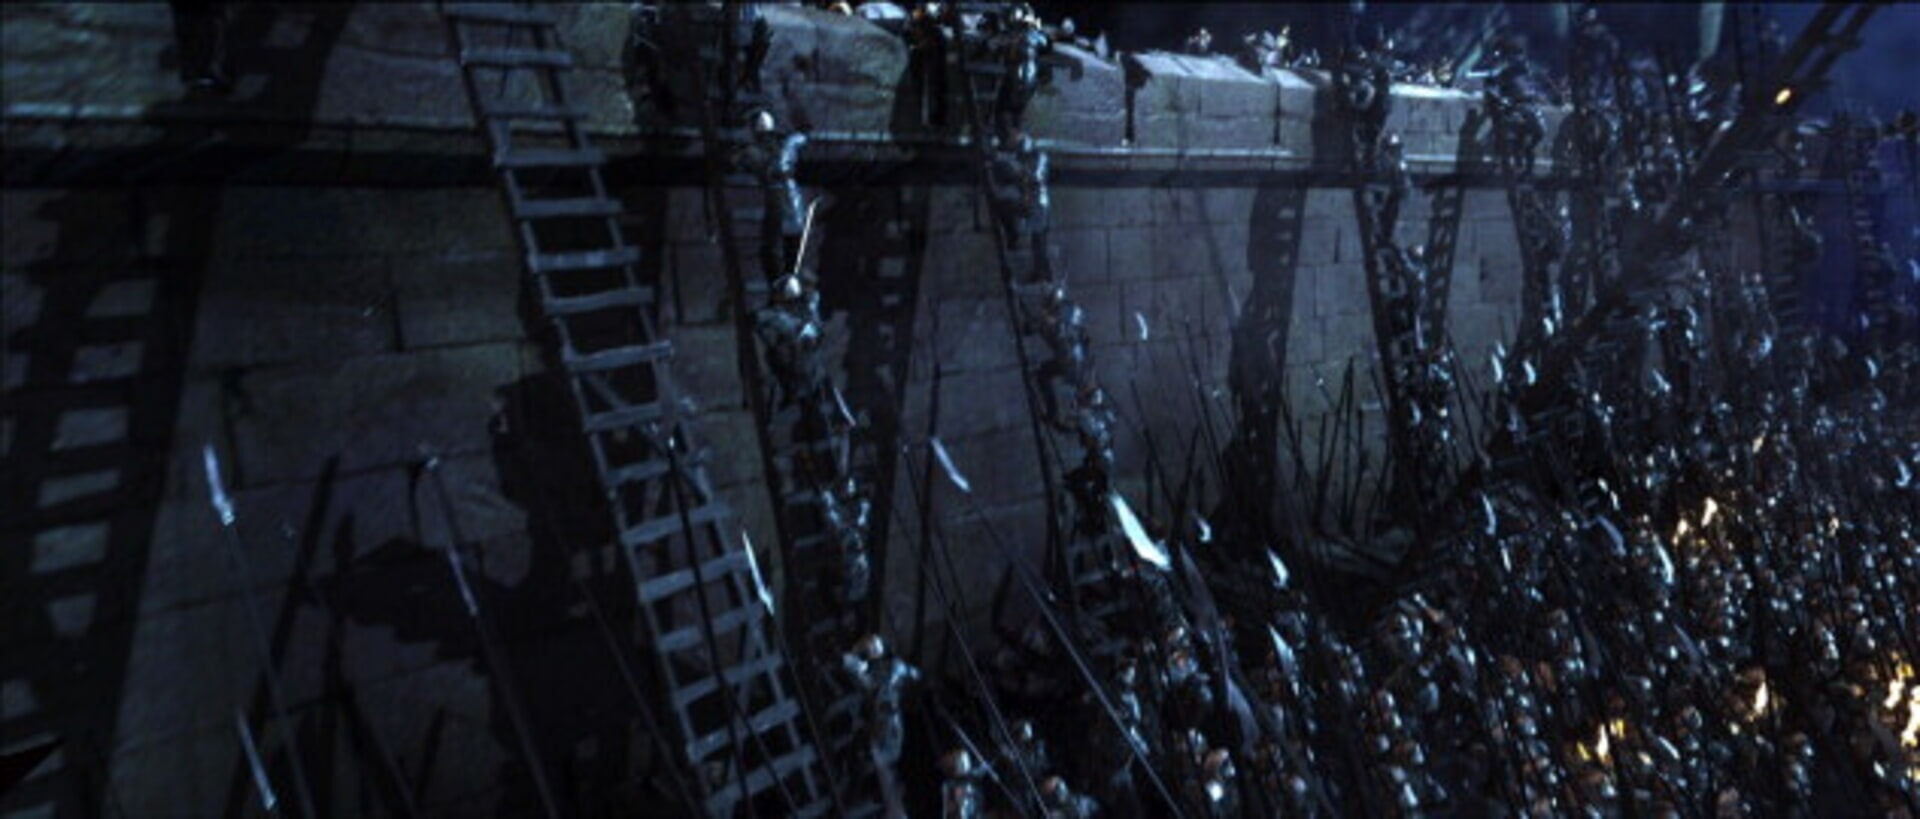 The Lord of the Rings: The Two Towers - Image 36